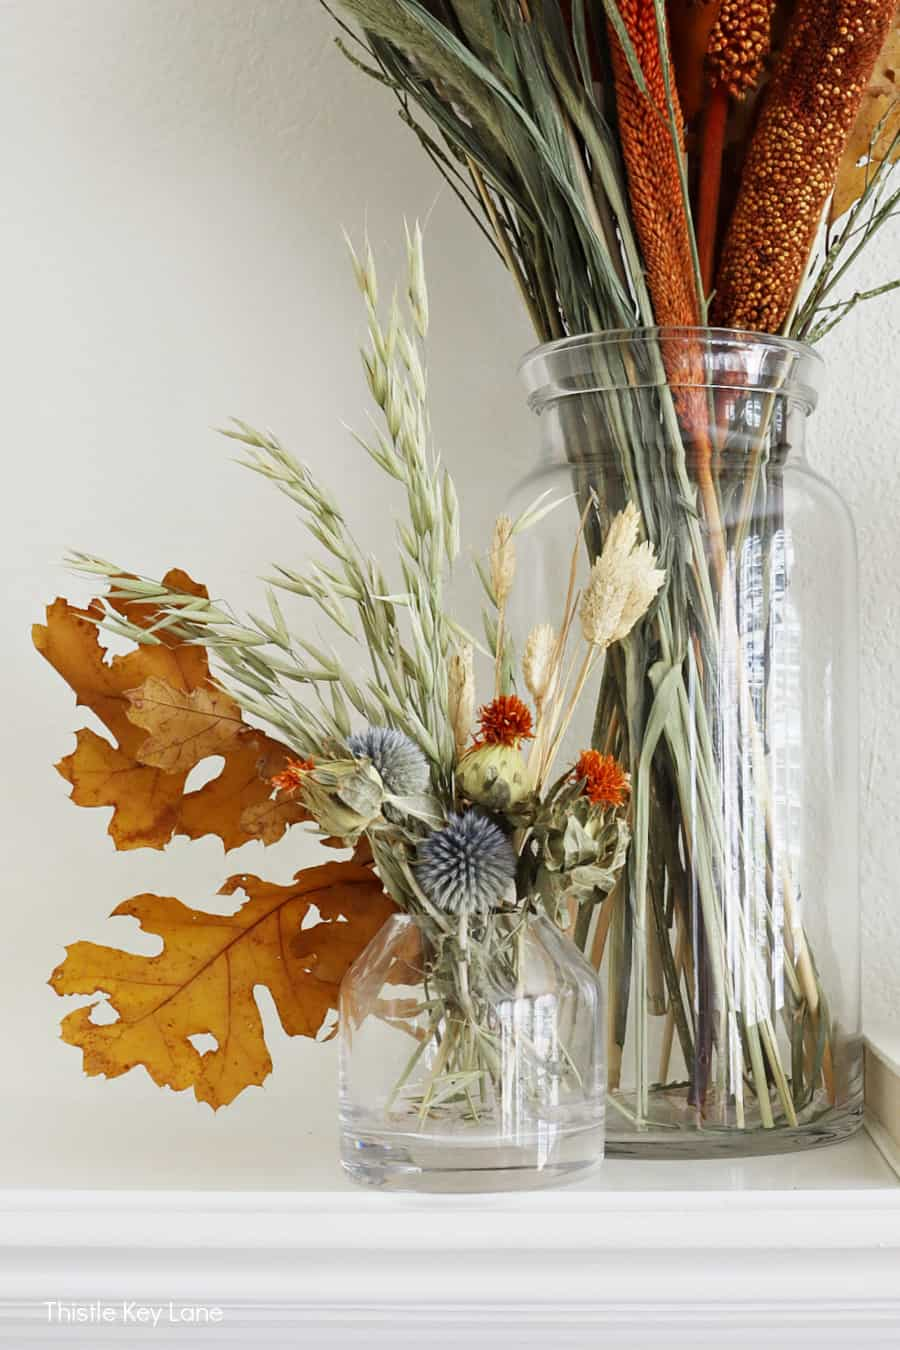 Fall leaves and grasses in a short glass vase.